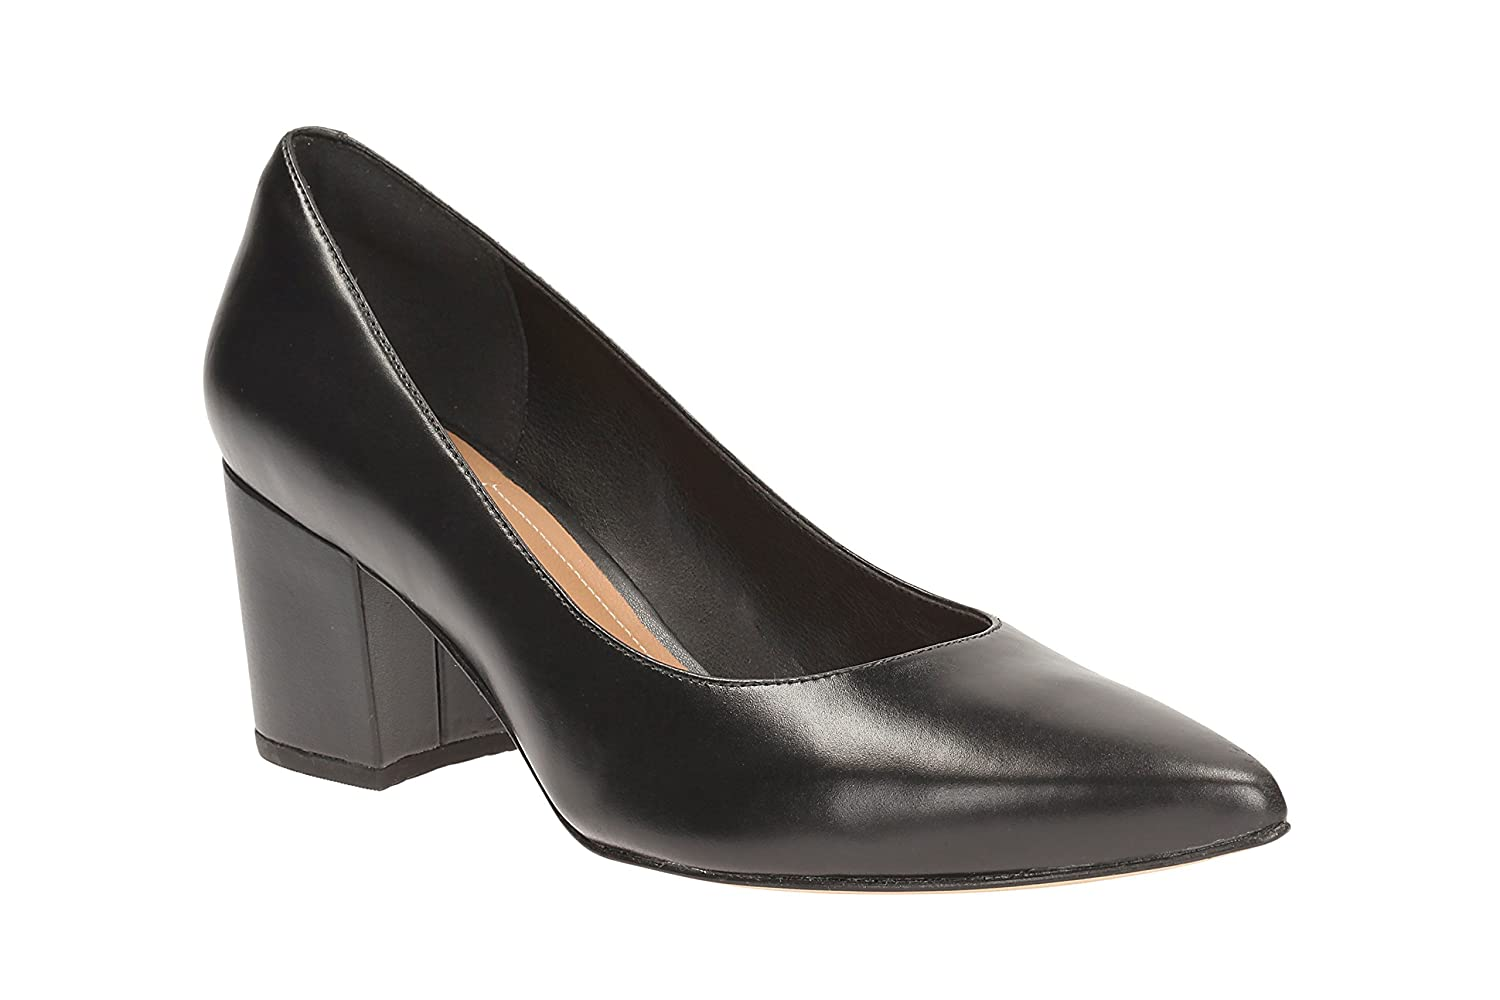 9f8385ef3e48 Clarks Womens Smart Clarks Pravana Rose Leather Shoes In Black   Amazon.co.uk  Shoes   Bags